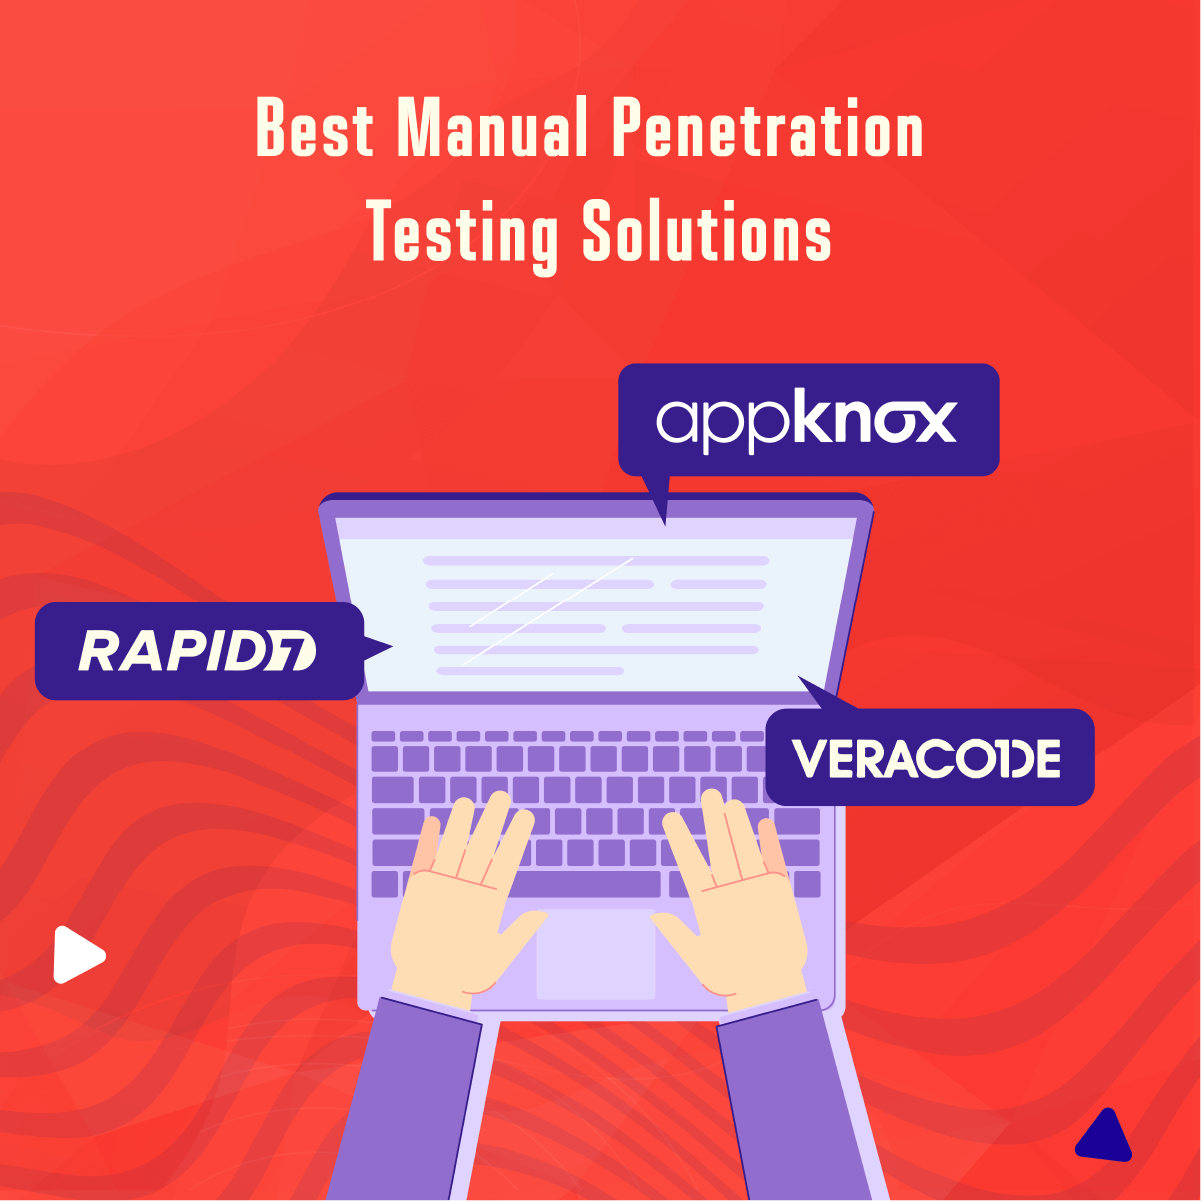 Best Manual Penetration Testing Solutions